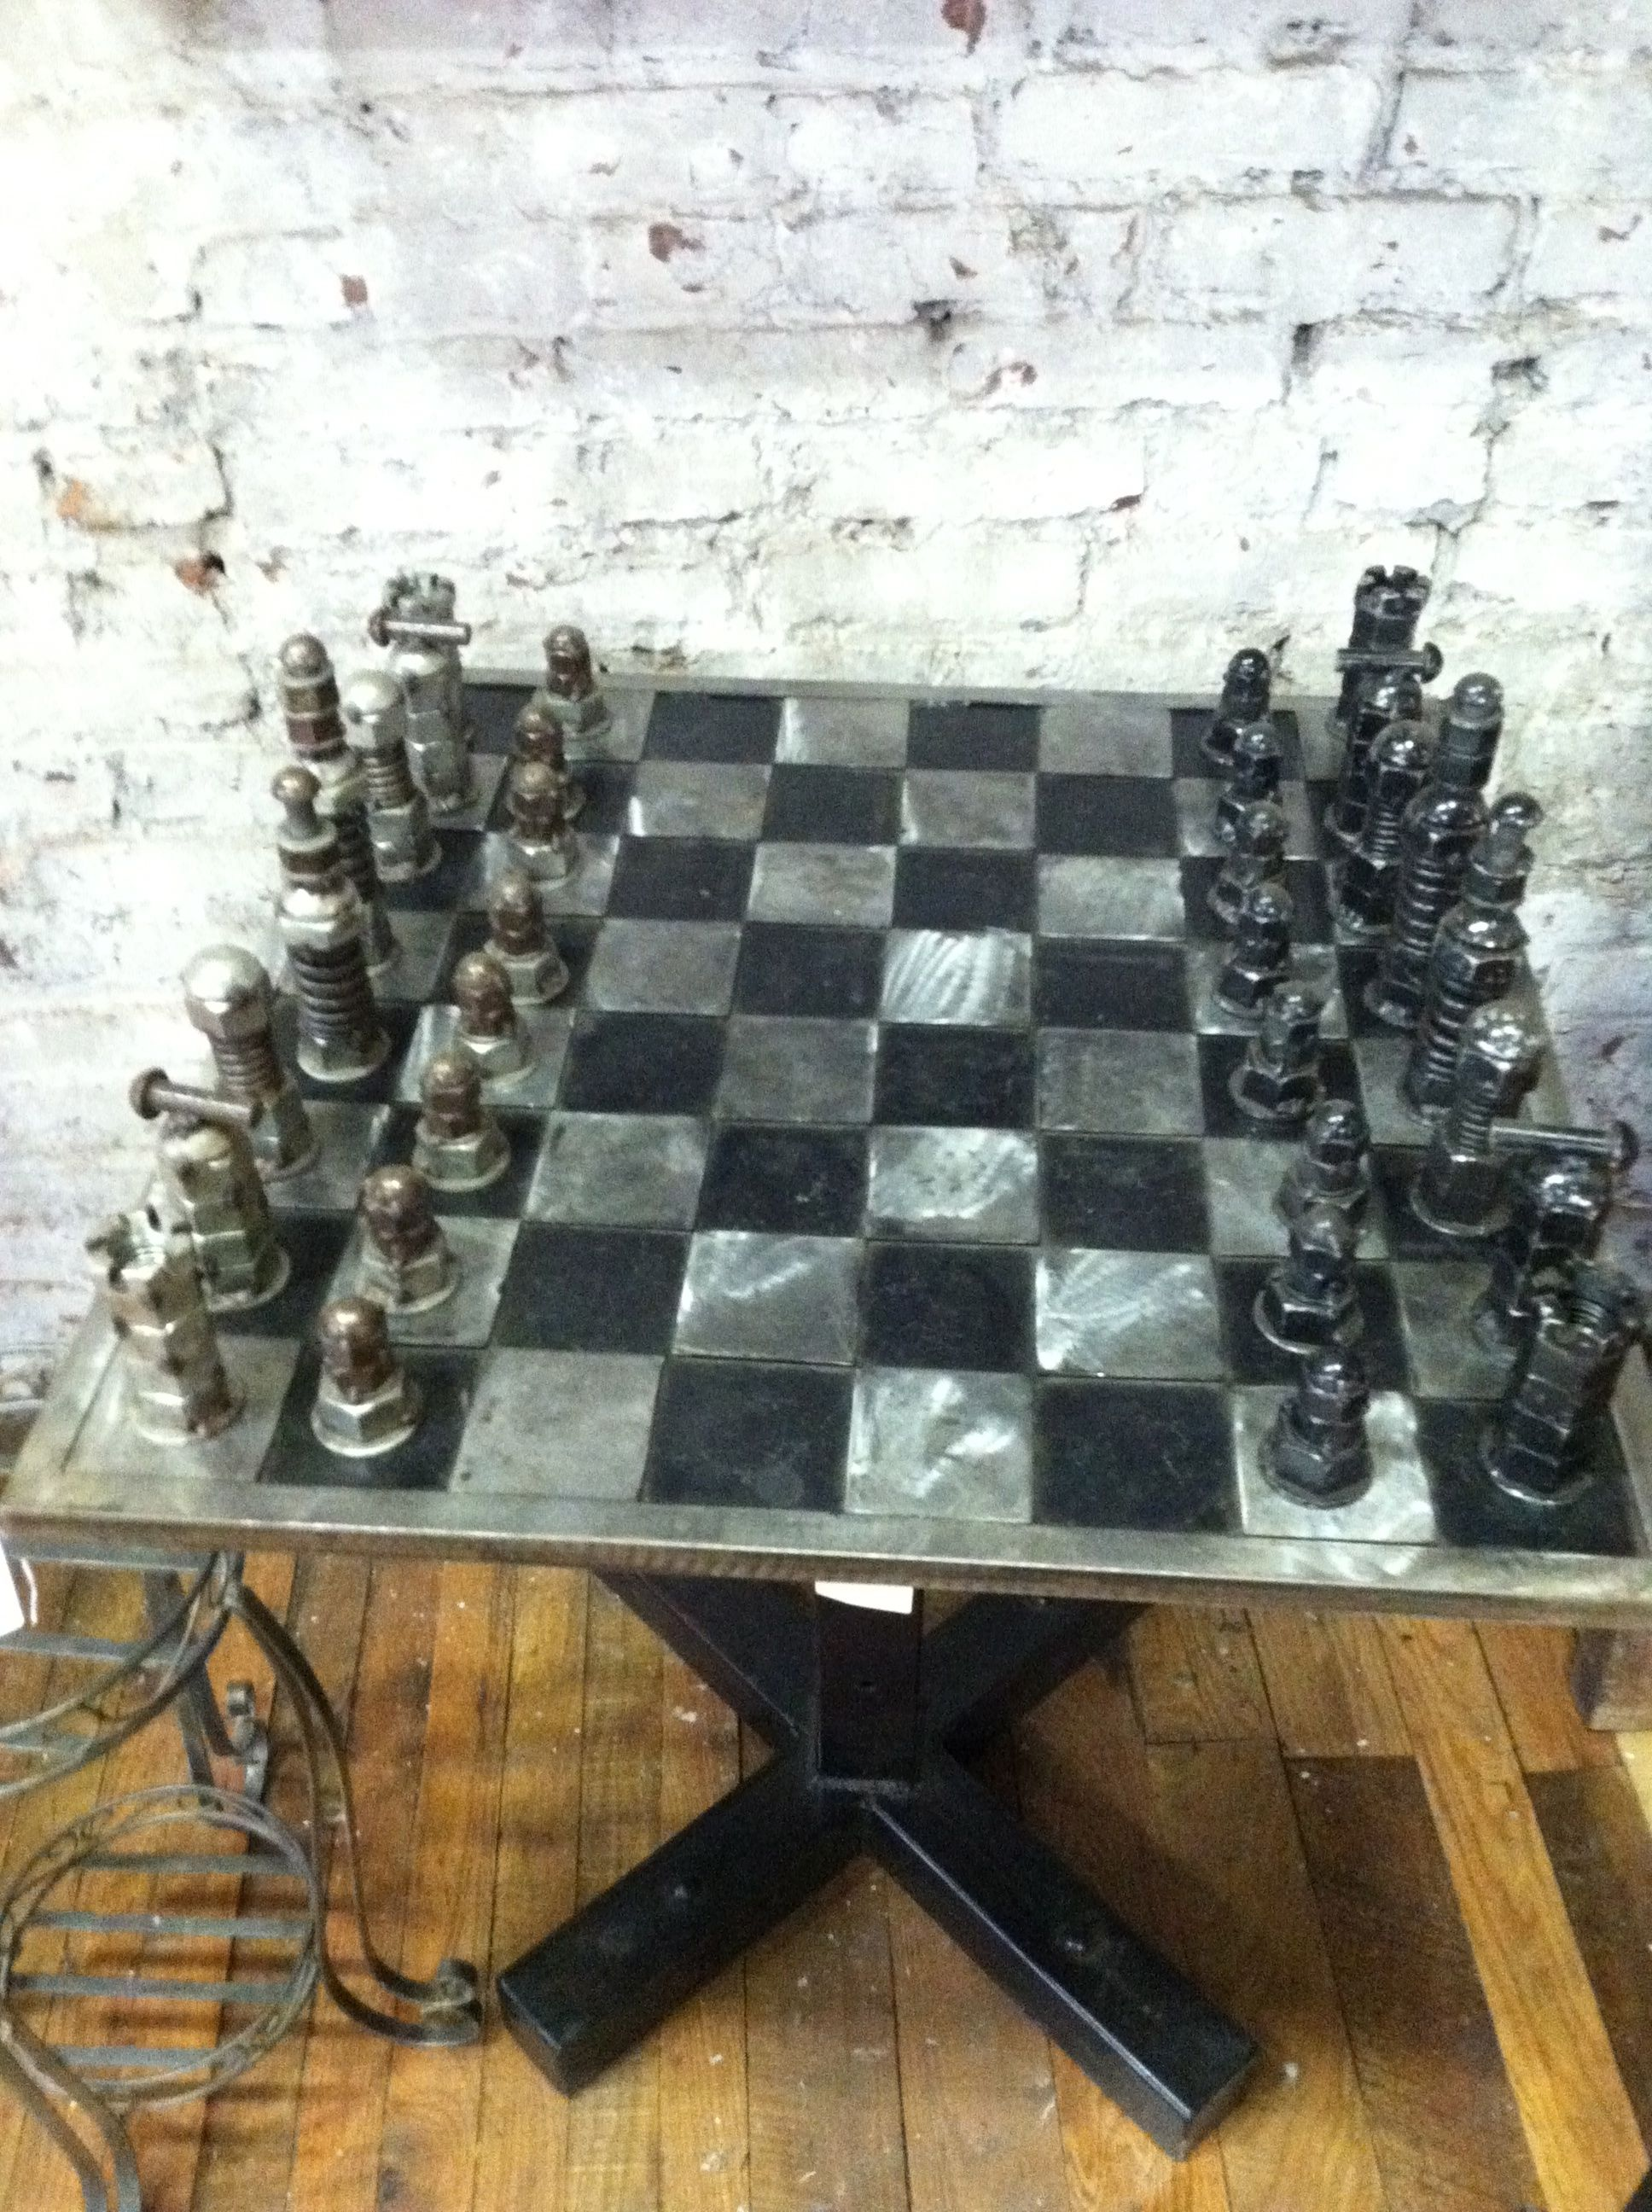 projects ideas metal chess pieces. metal chess set  Games Pinterest Chess sets and Welding